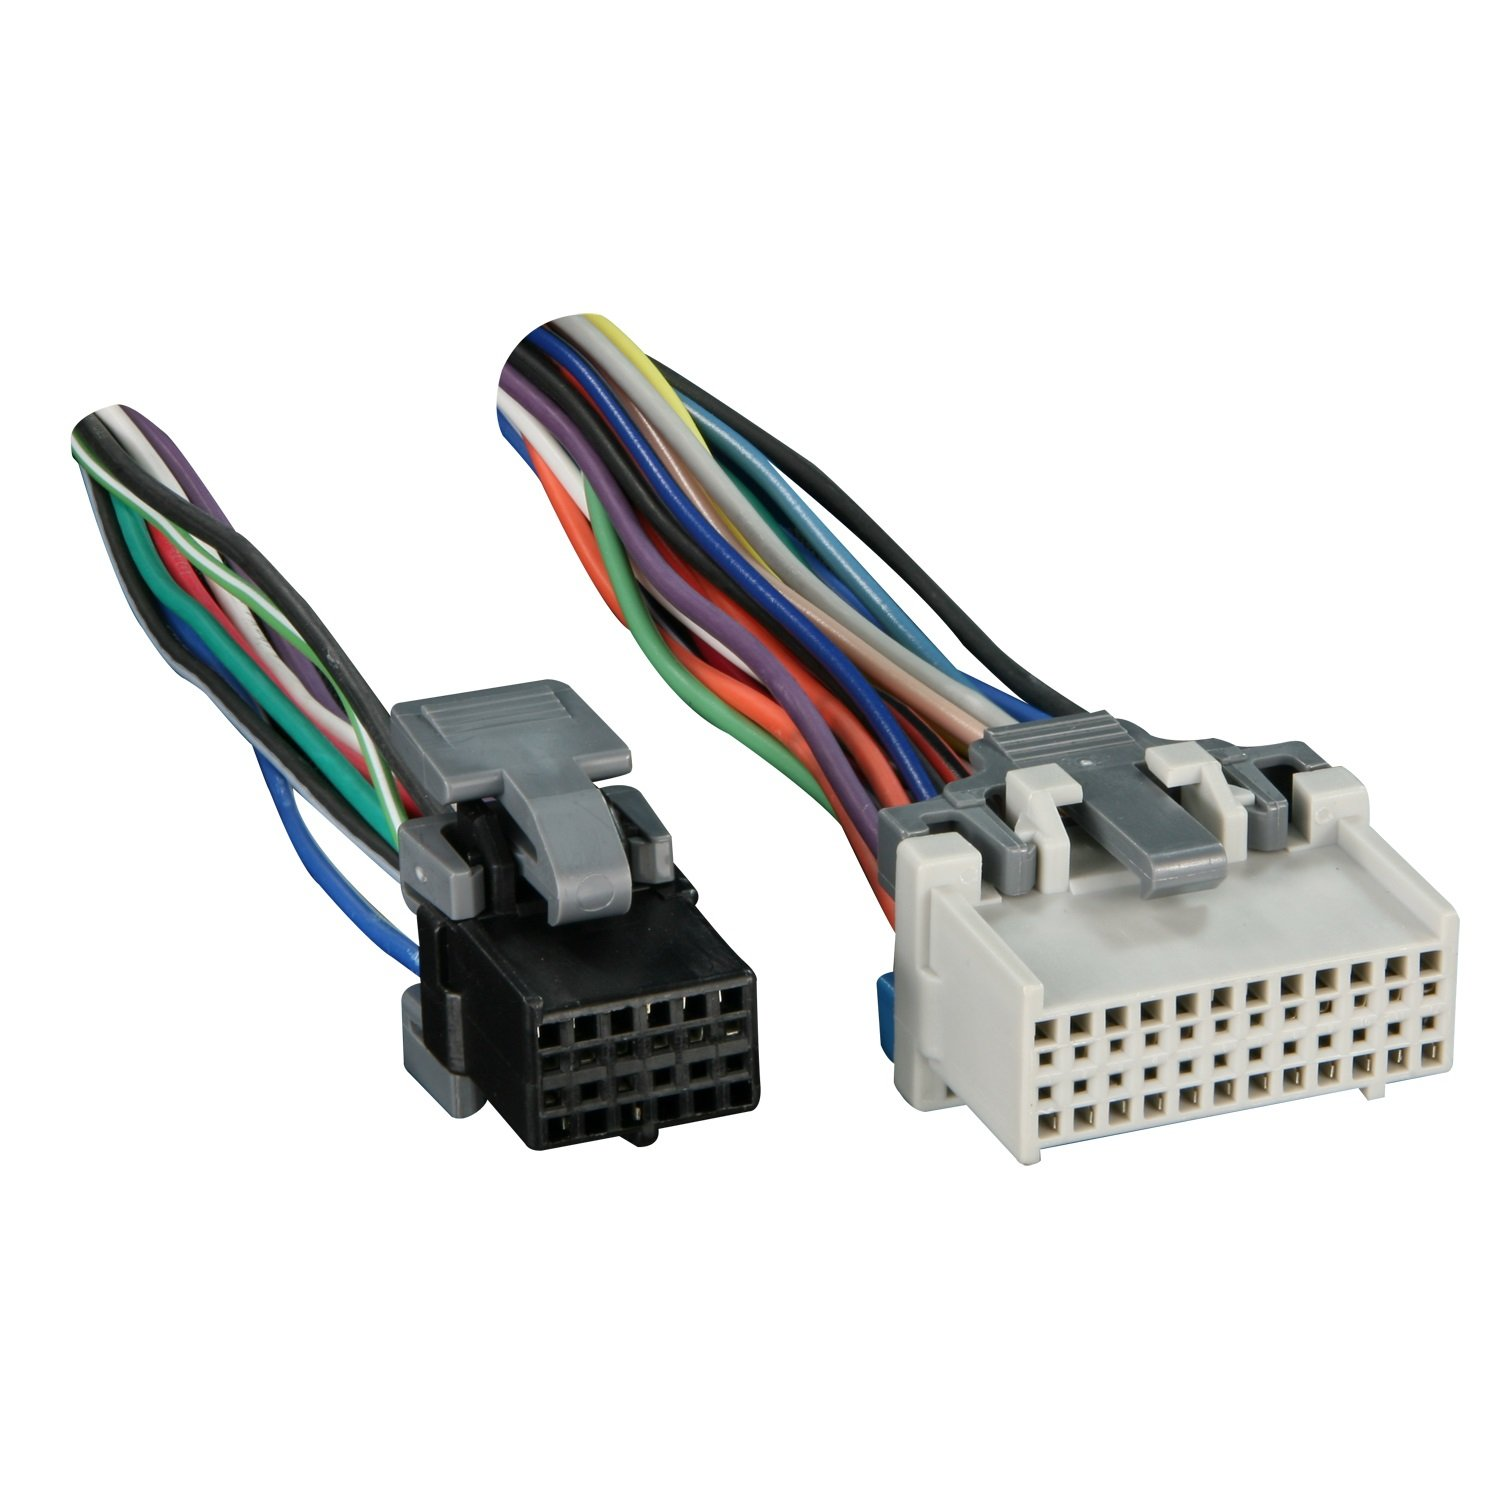 711log4bdML._SL1500_ amazon com metra turbowires 71 2003 1 wiring harness car electronics GM Wiring Color Codes at nearapp.co